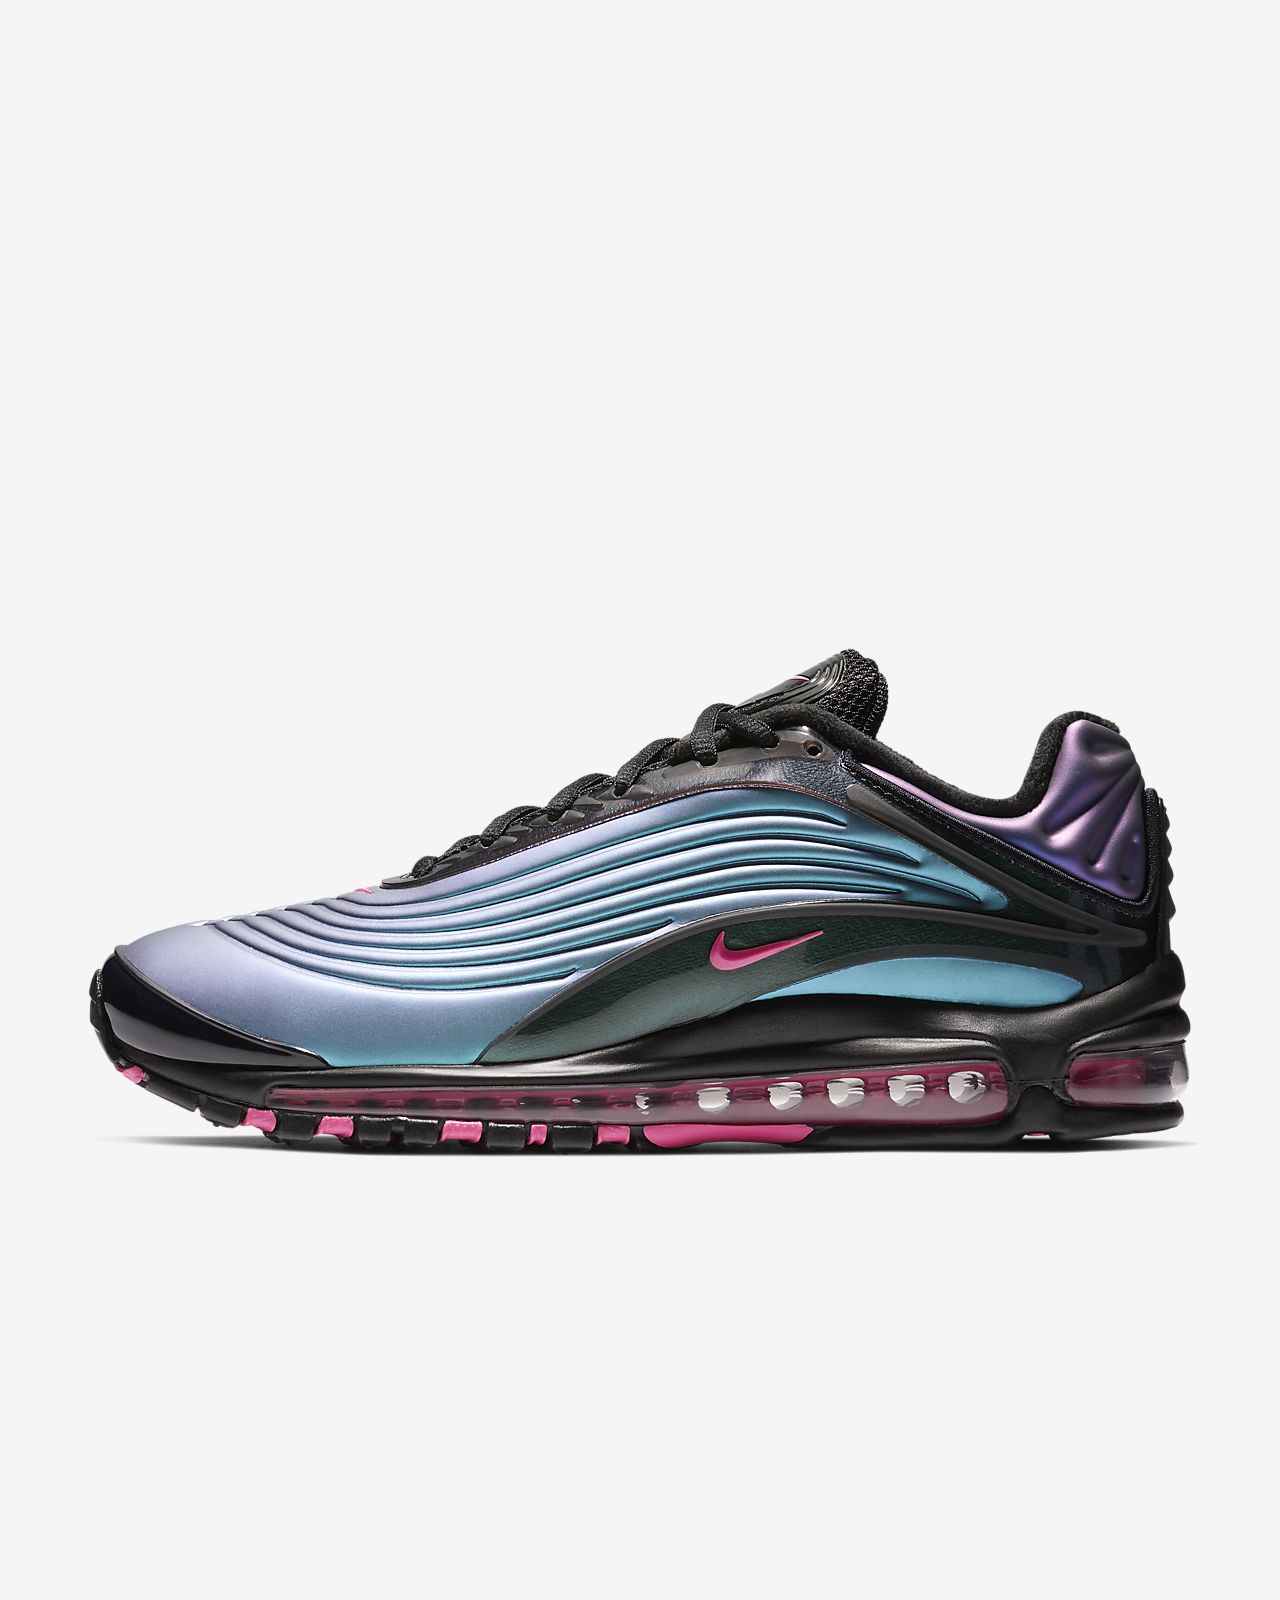 8708b44597 Nike Air Max Deluxe Men's Shoe. Nike.com